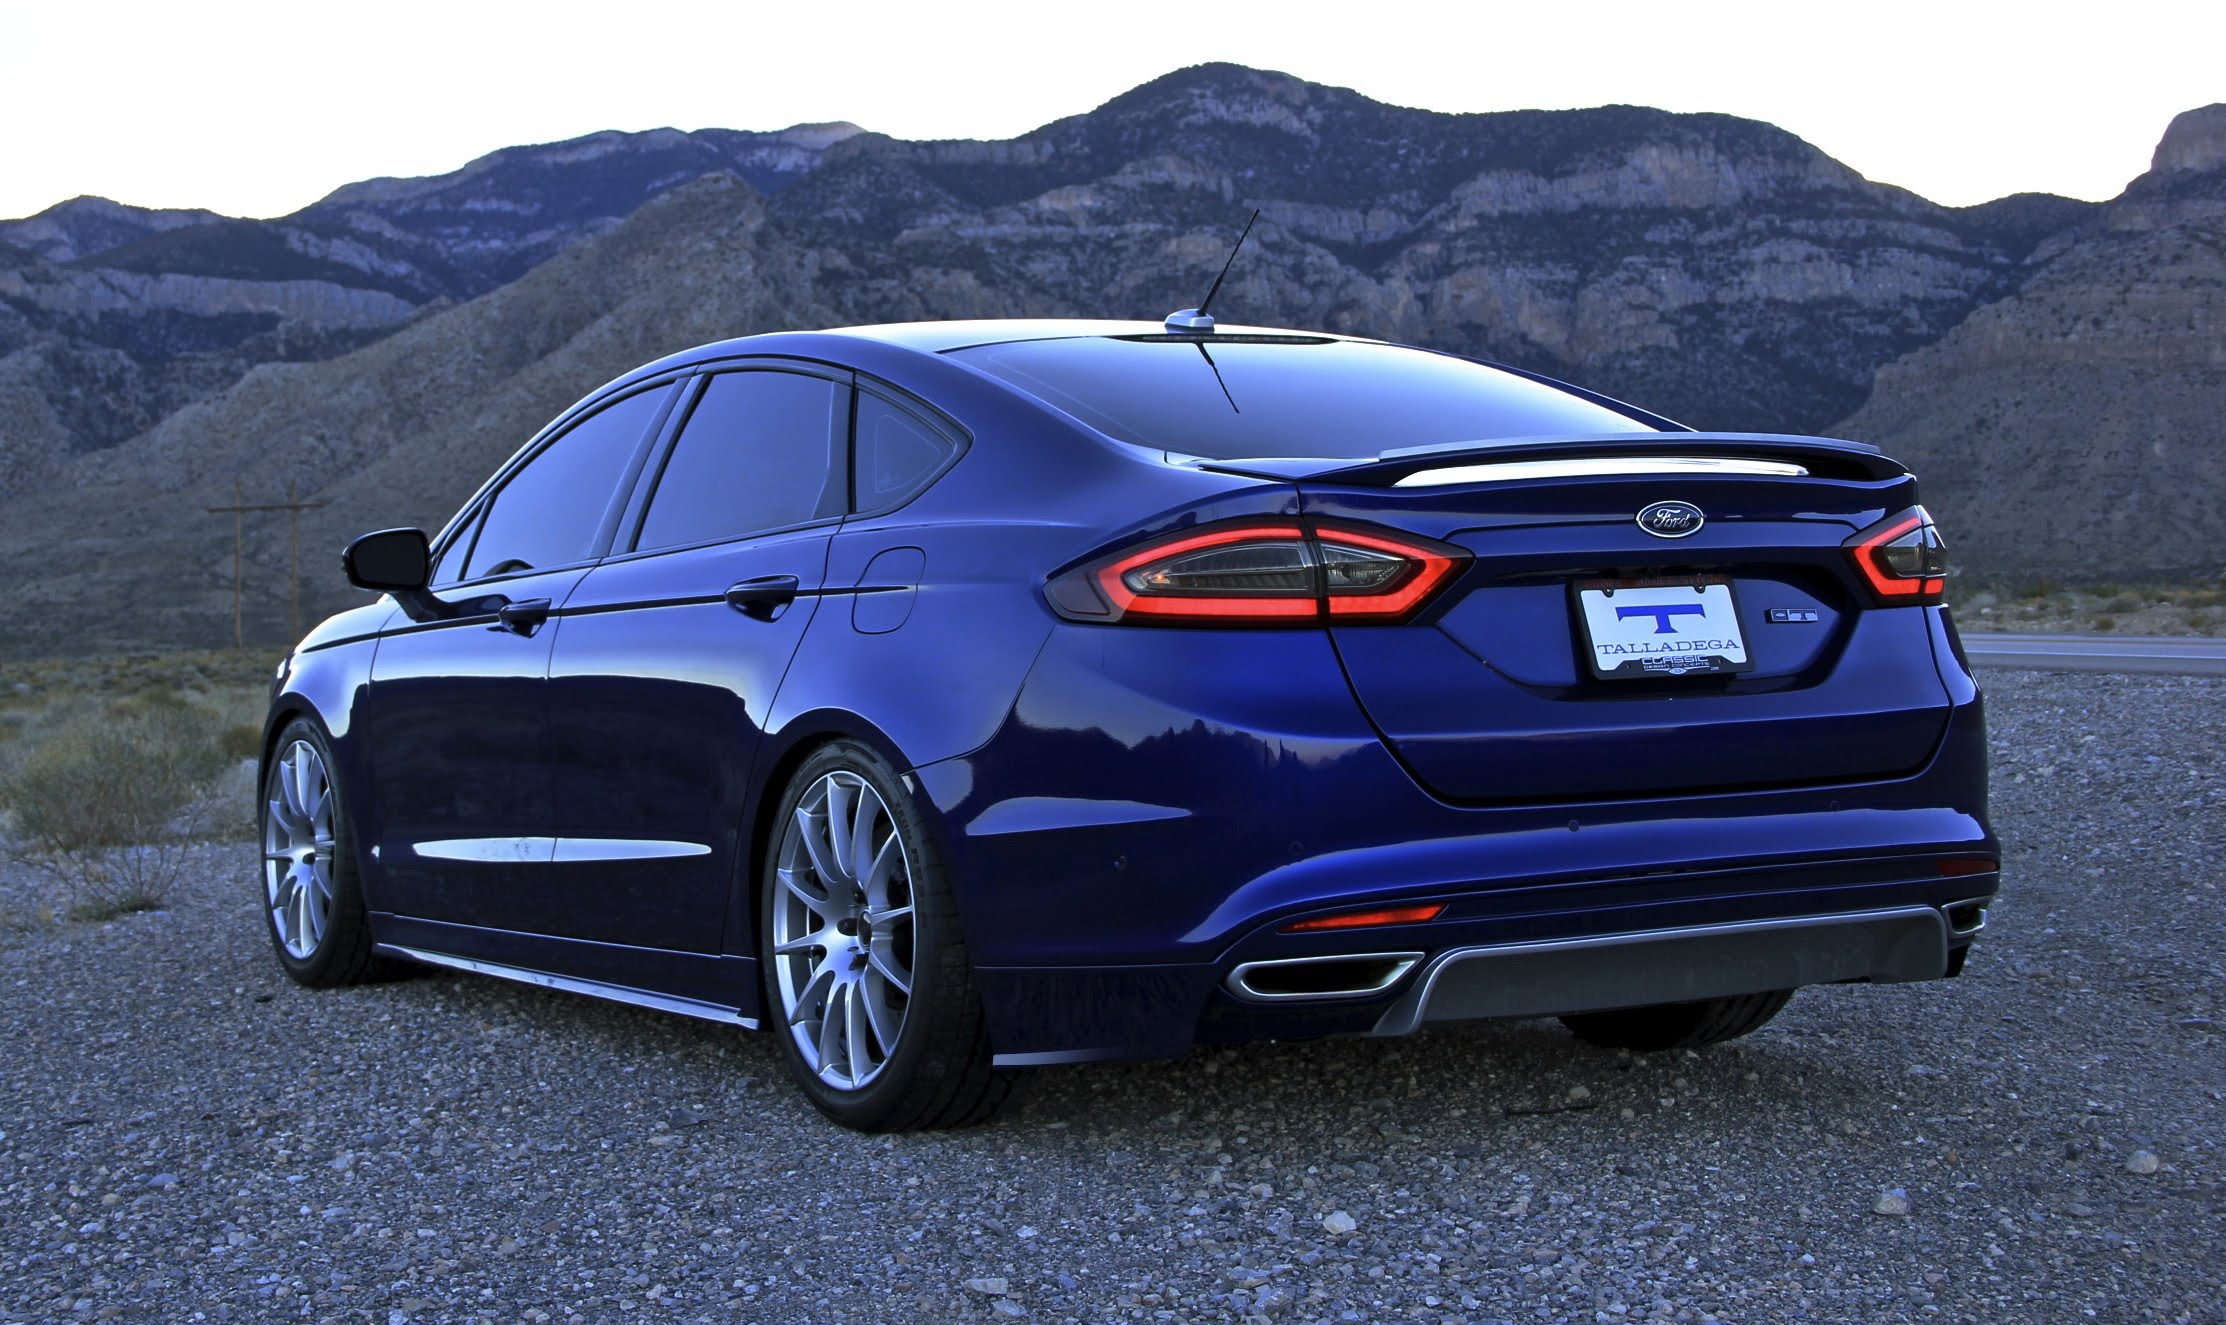 2013 ford fusion hd desktop wallpapers | 7wallpapers